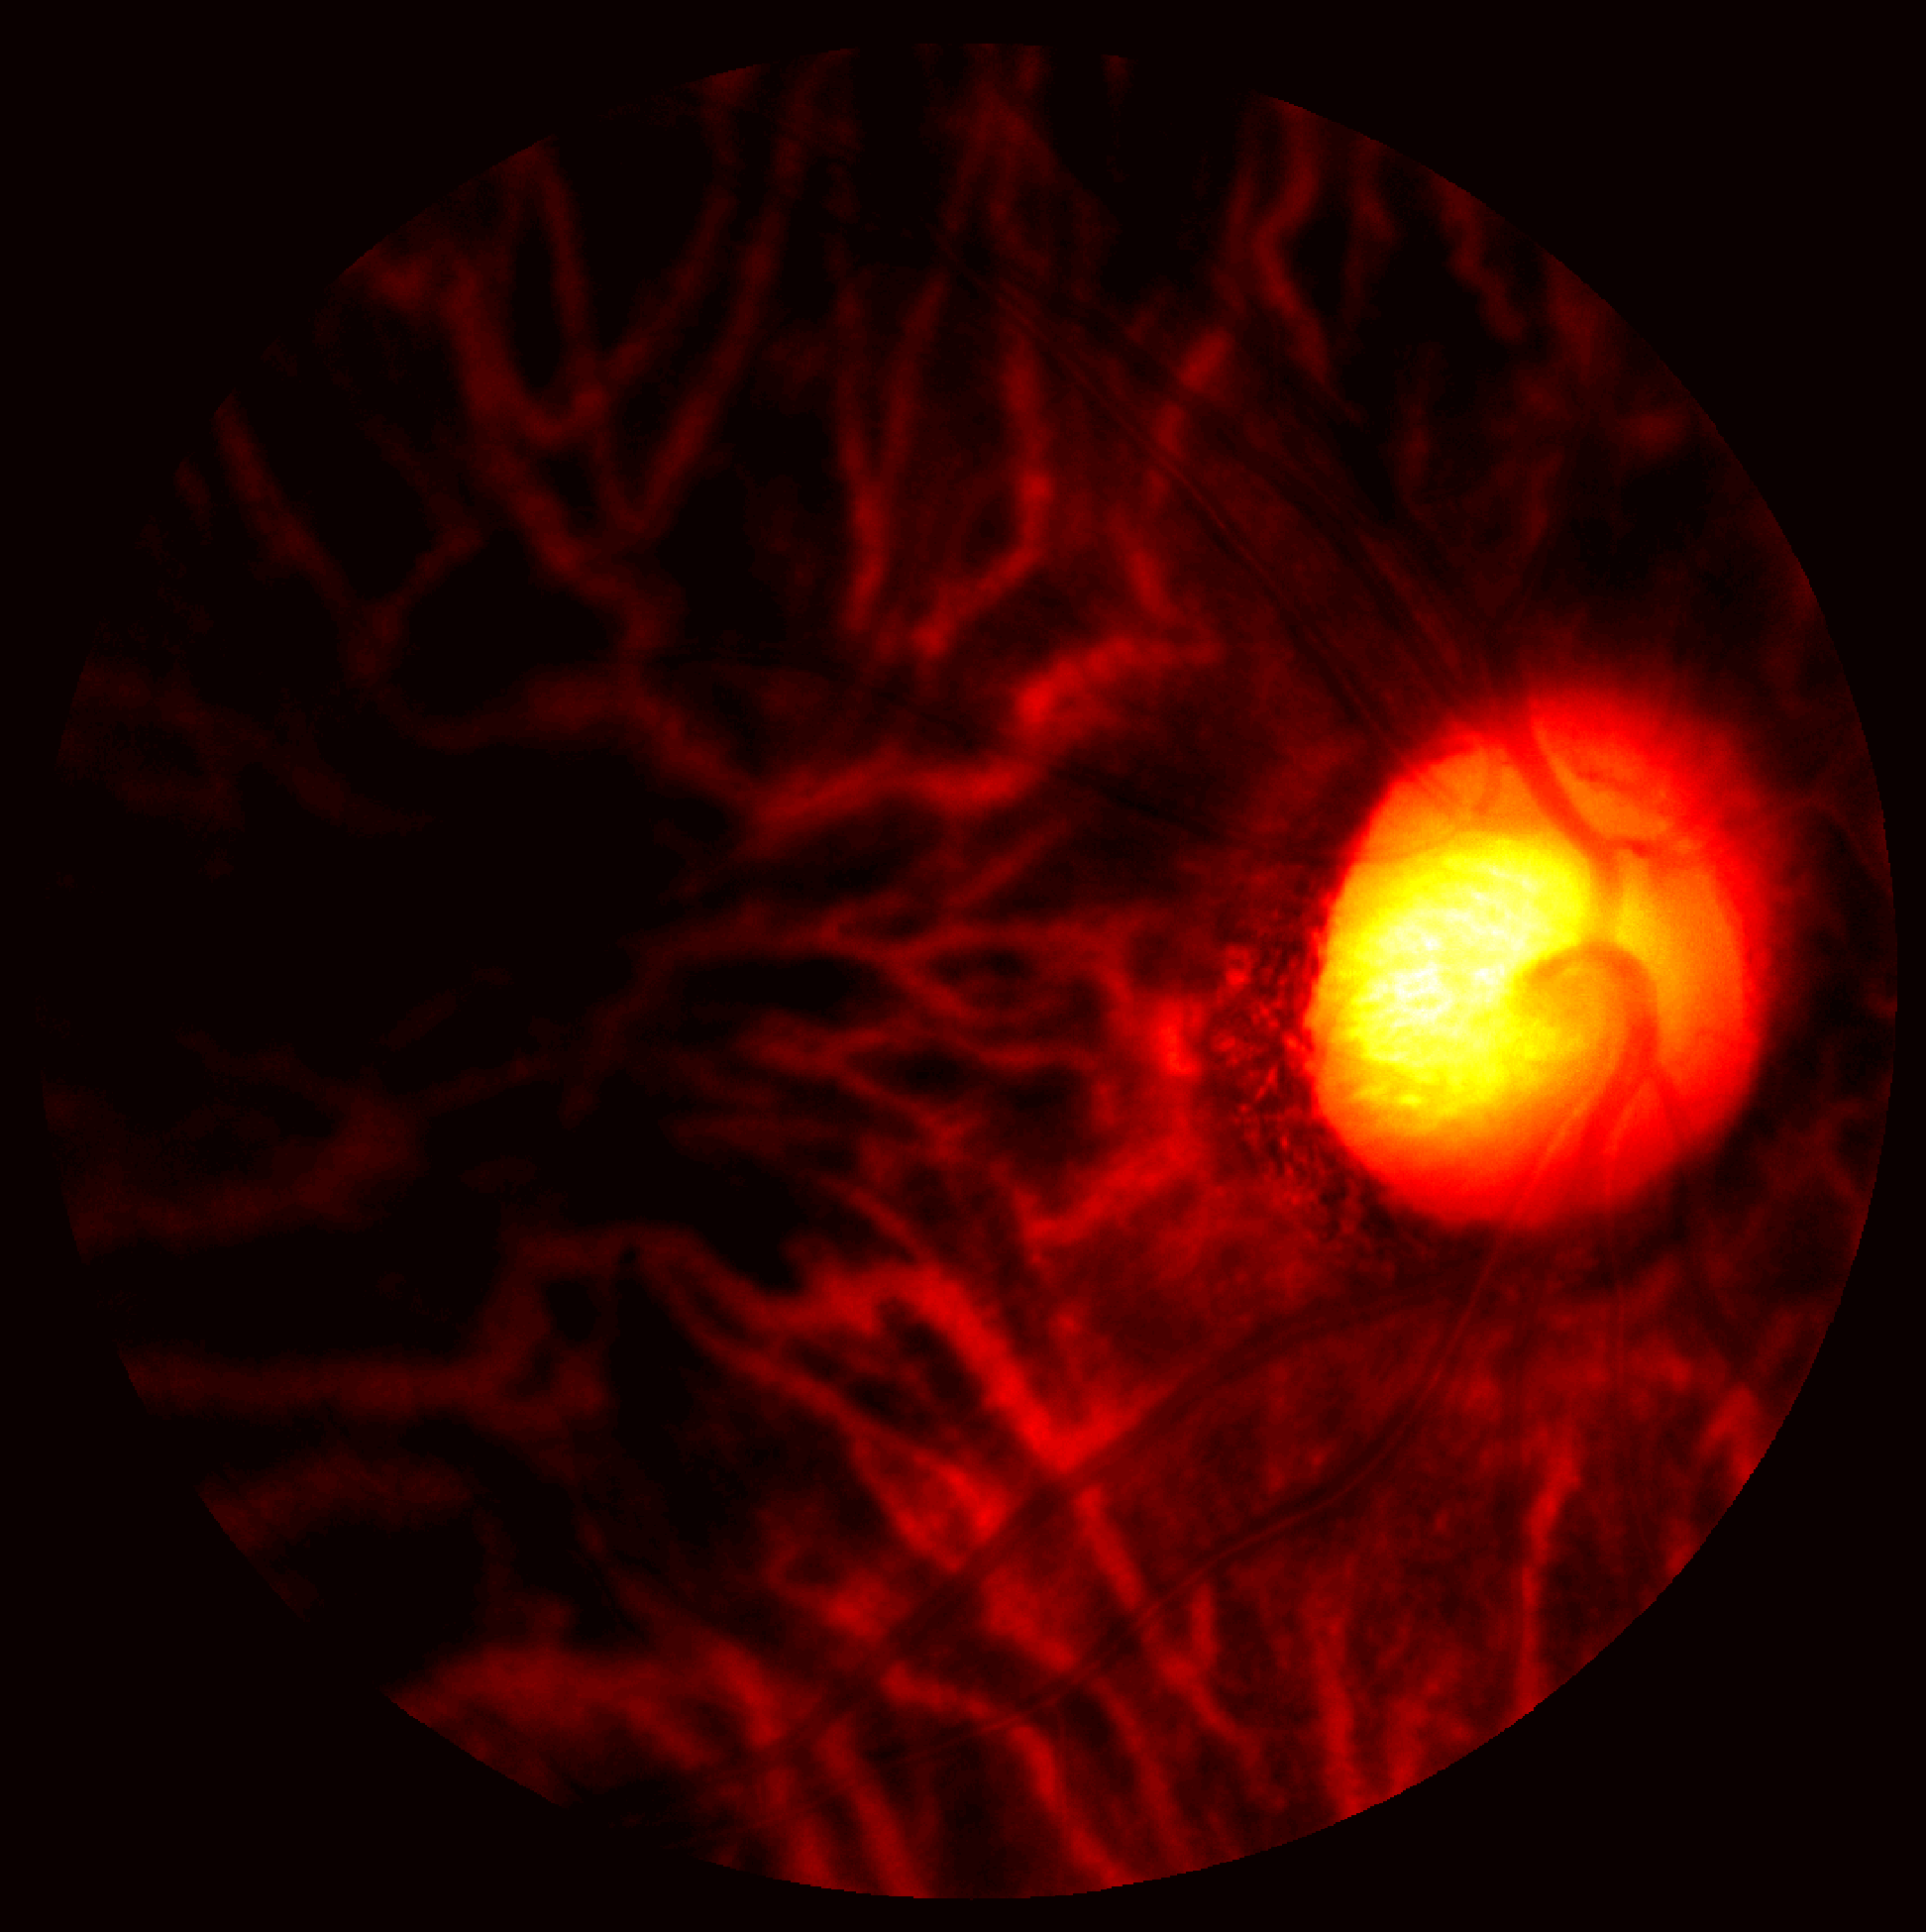 An illustration of an image of the retina captured by hyperspectral imaging at 700nm wavelength.